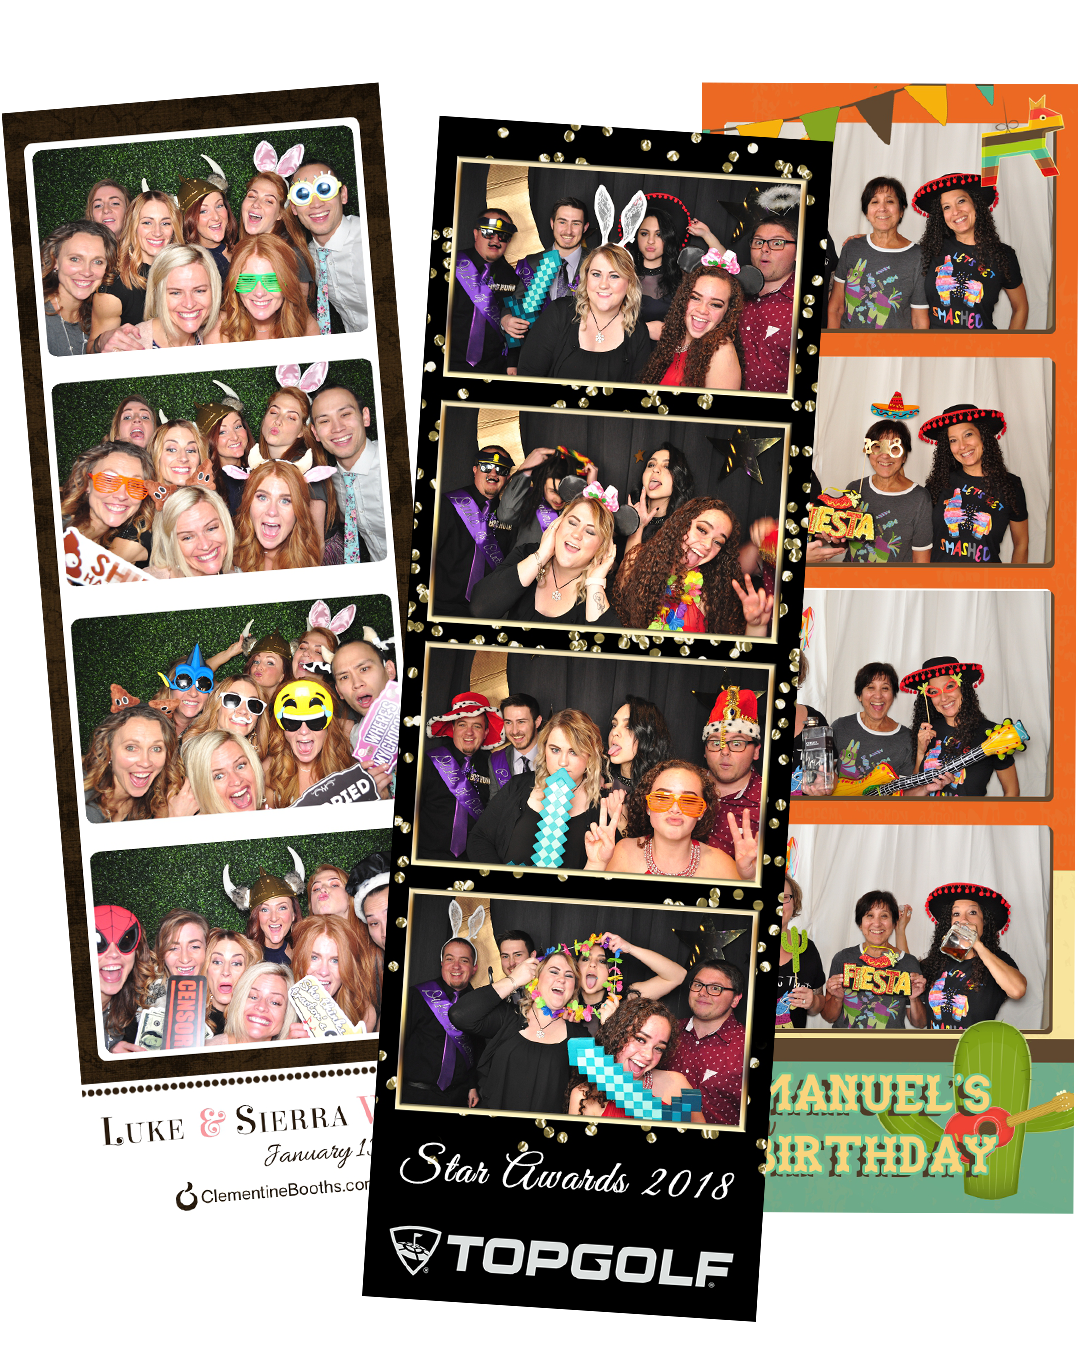 Traditional Booth - This booth is great for any event type. After your guest walk through and strike a pose, they will be greeted with a printed photo strip to take home and forever remember the amazing night they had.